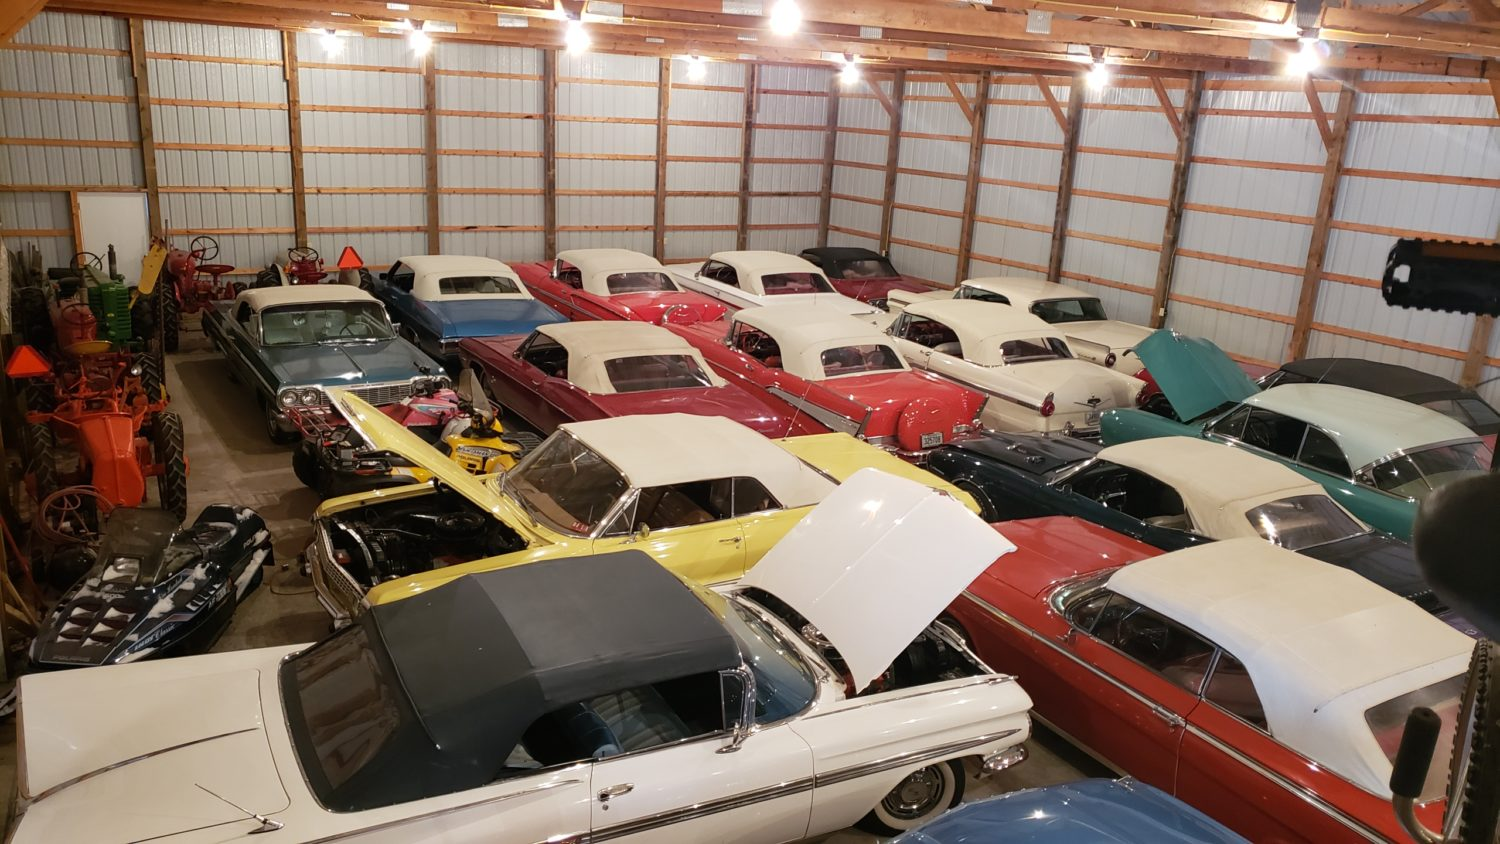 Fabulous Convertibles-Muscle- Antique Tractors & More! The Windels Collection LIVE ONSITE & Online BIdding - image 1